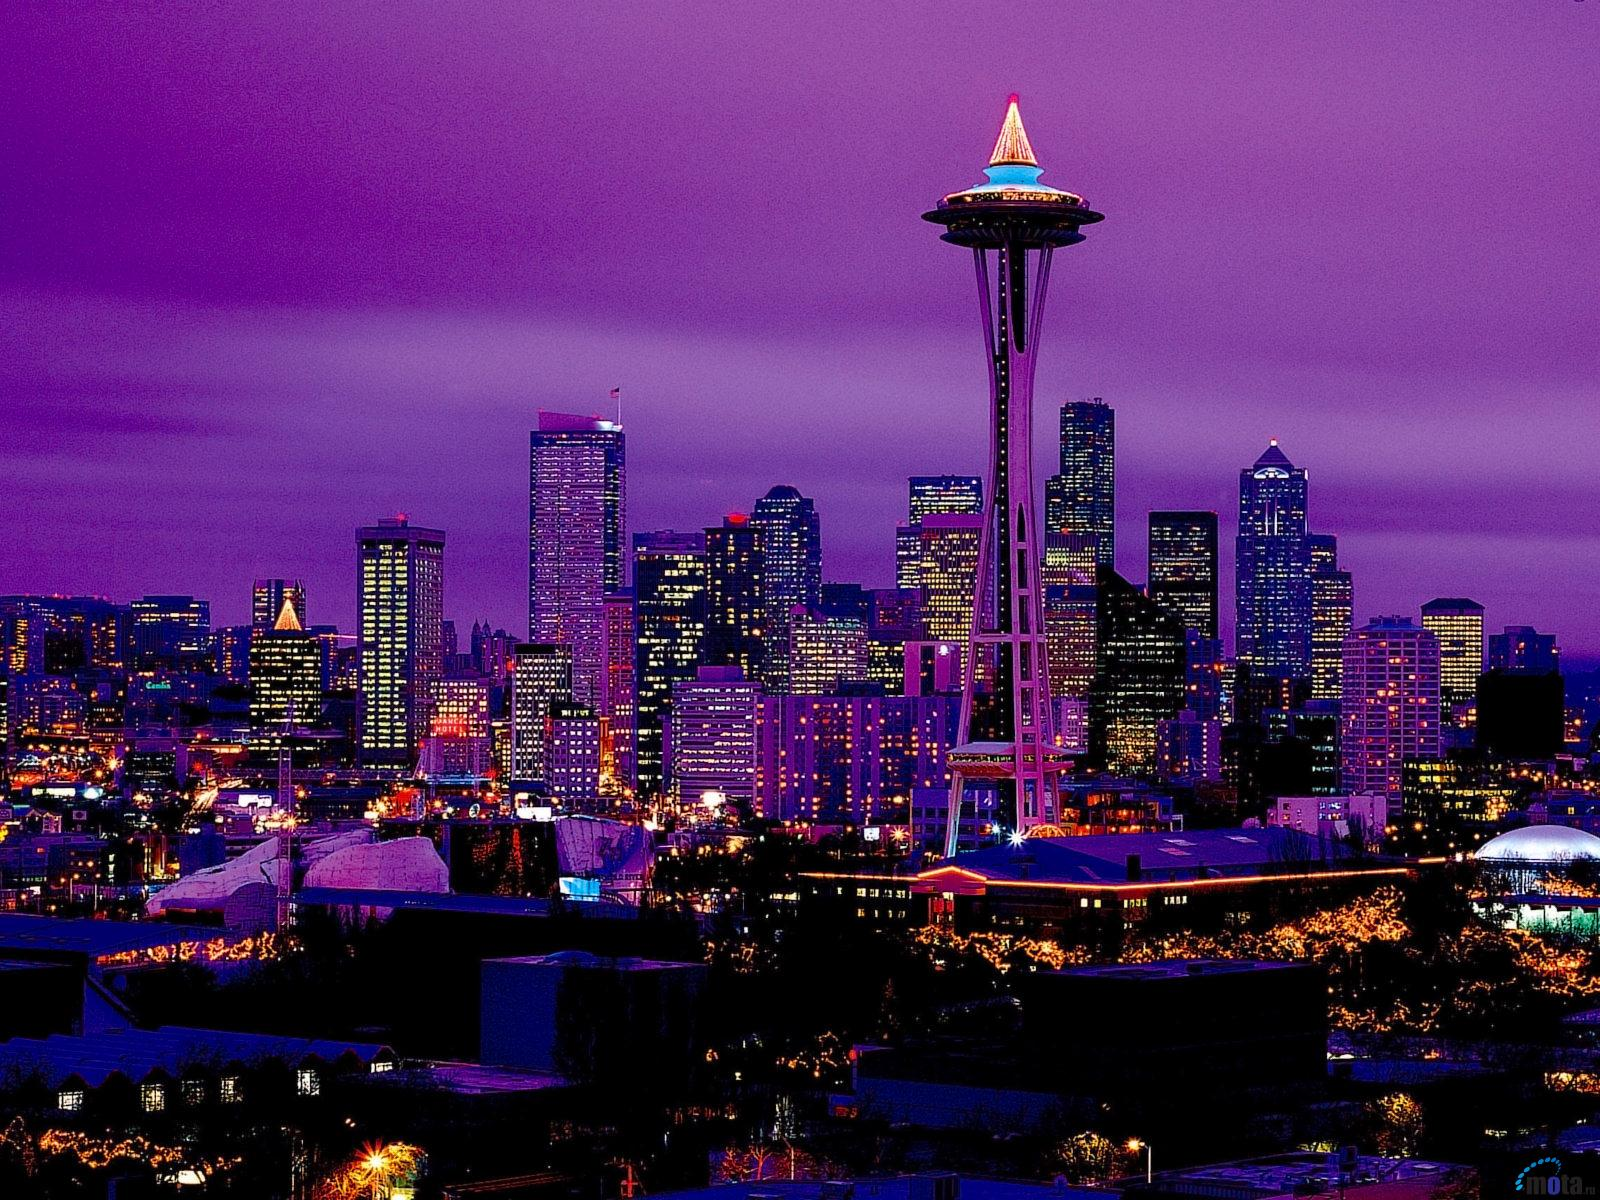 Download Wallpaper Seattle by night Washington USA 1600 x 1200 1600x1200